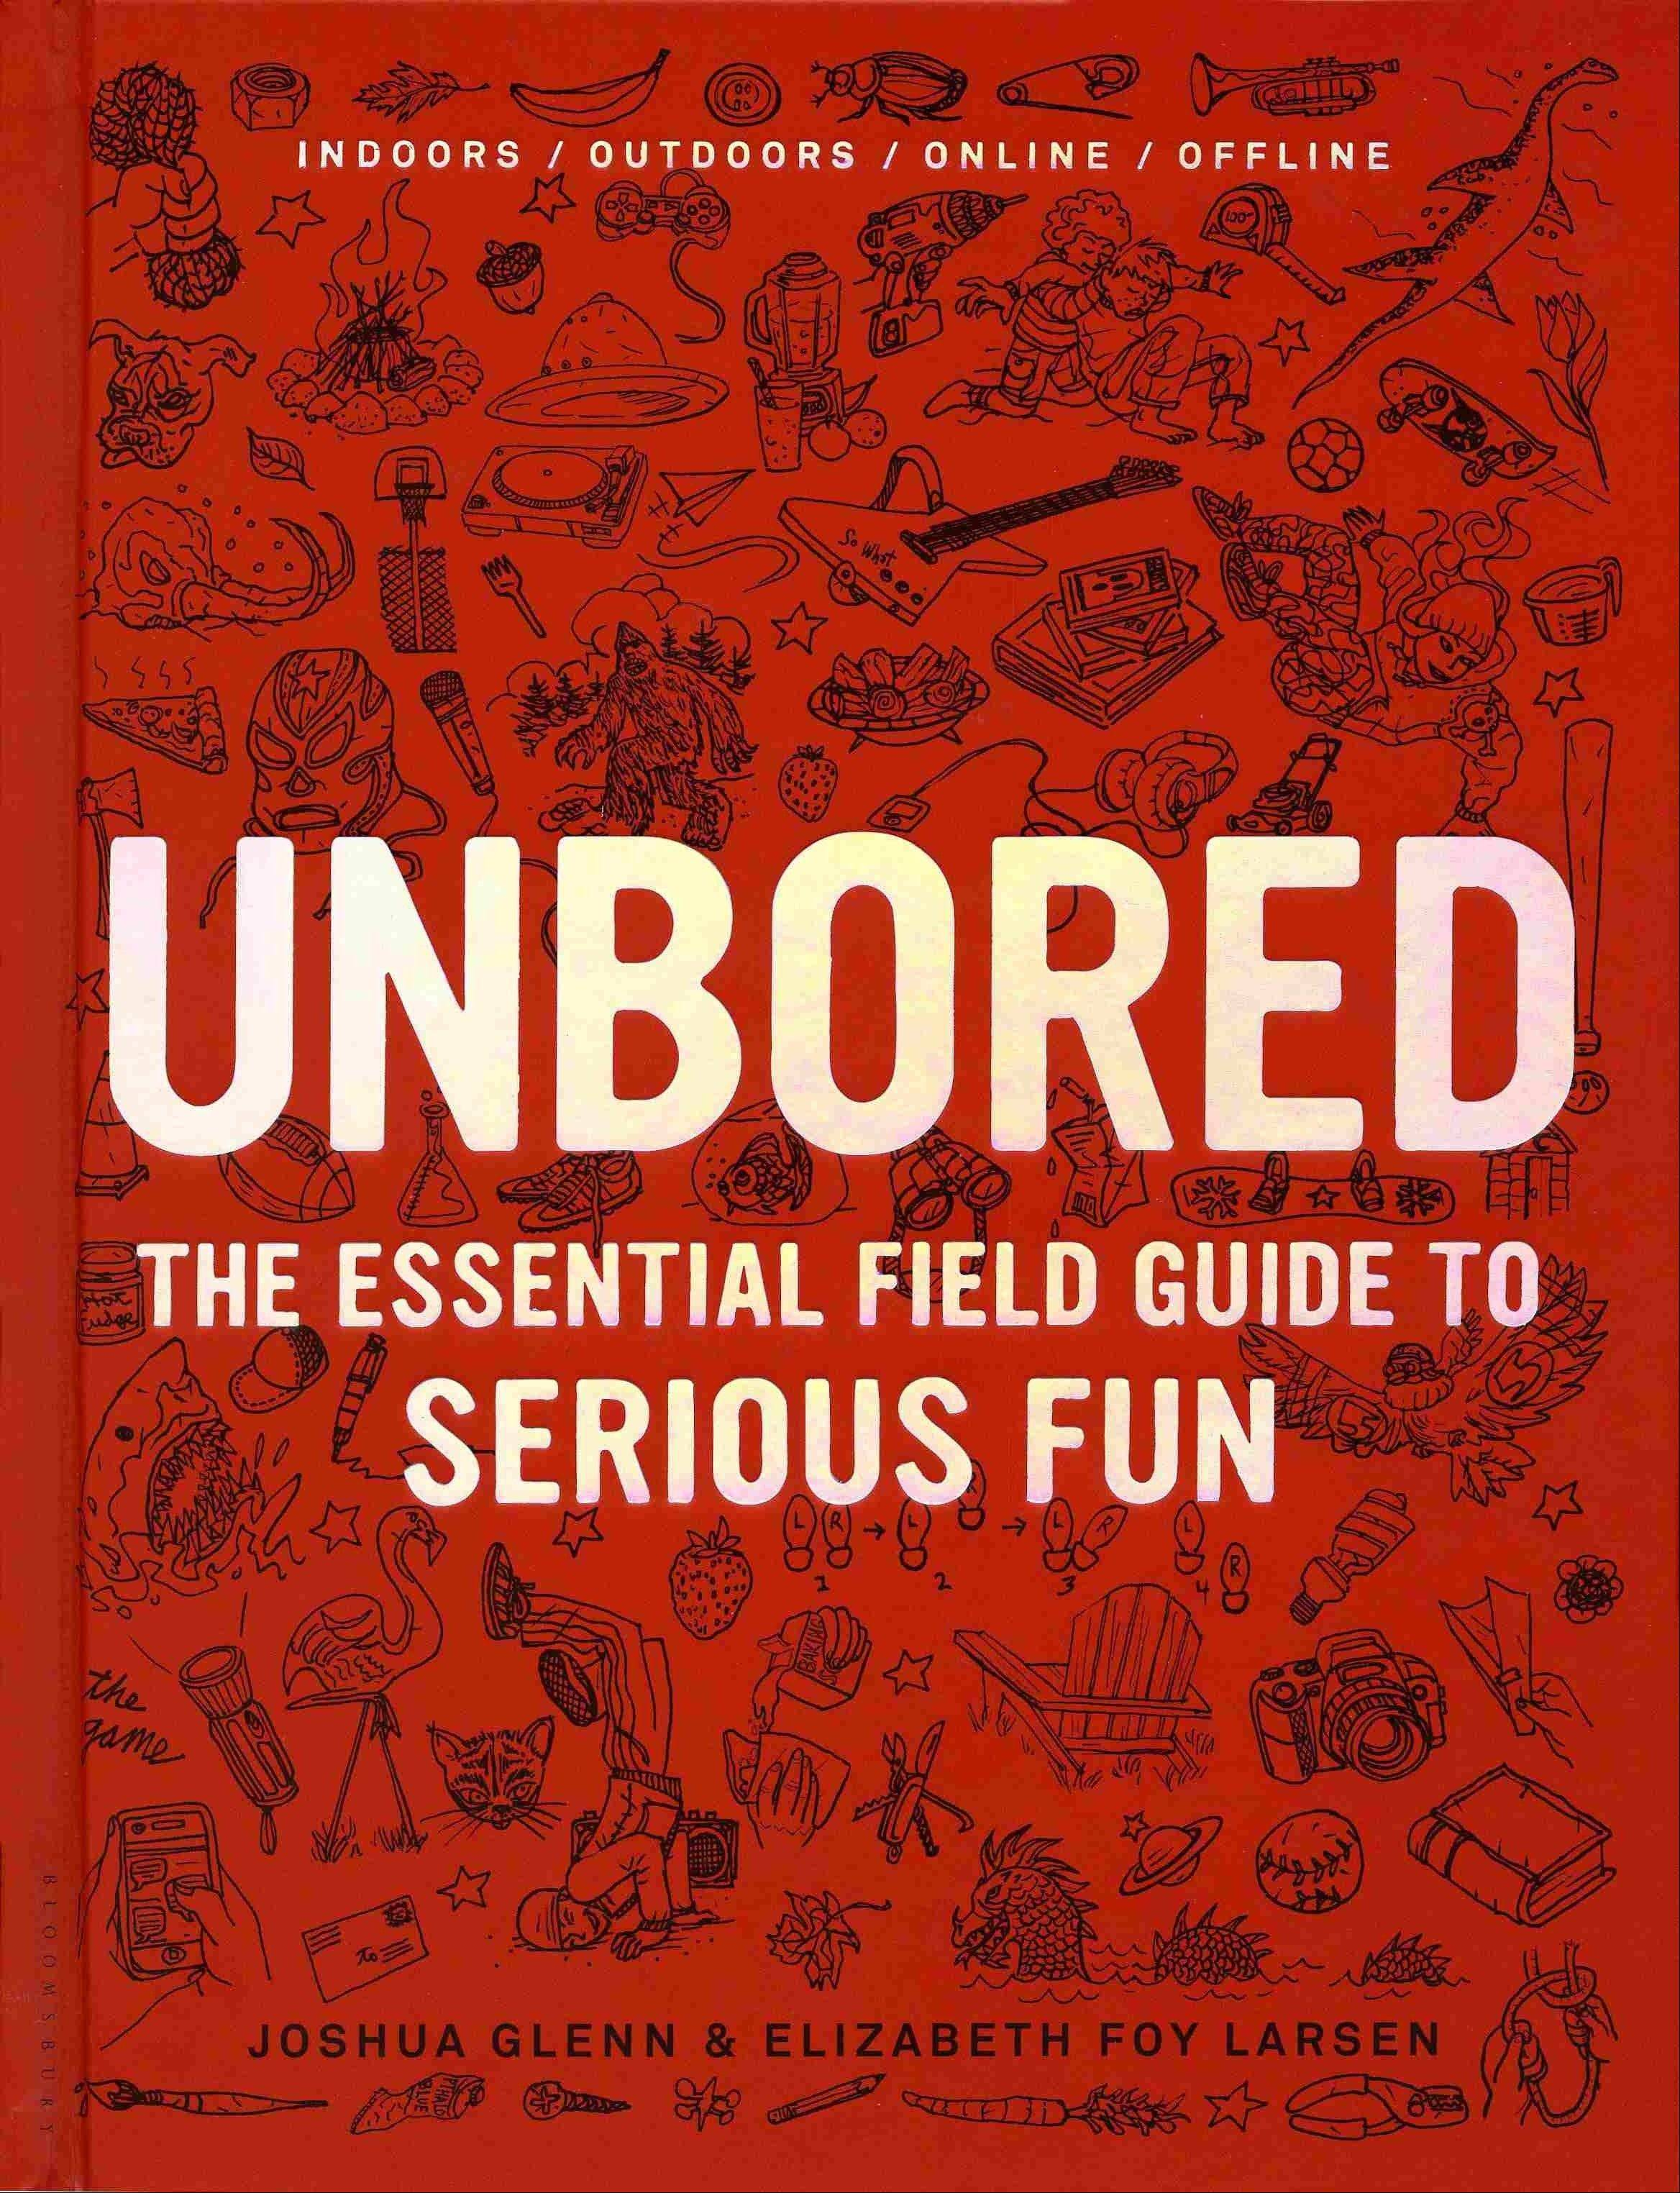 �Unbored: The Essential Field Guide to Serious Fun� by Joshua Glenn & Elizabeth Foy Larsen (Bloomsbury 2012), $25, 352 pages.